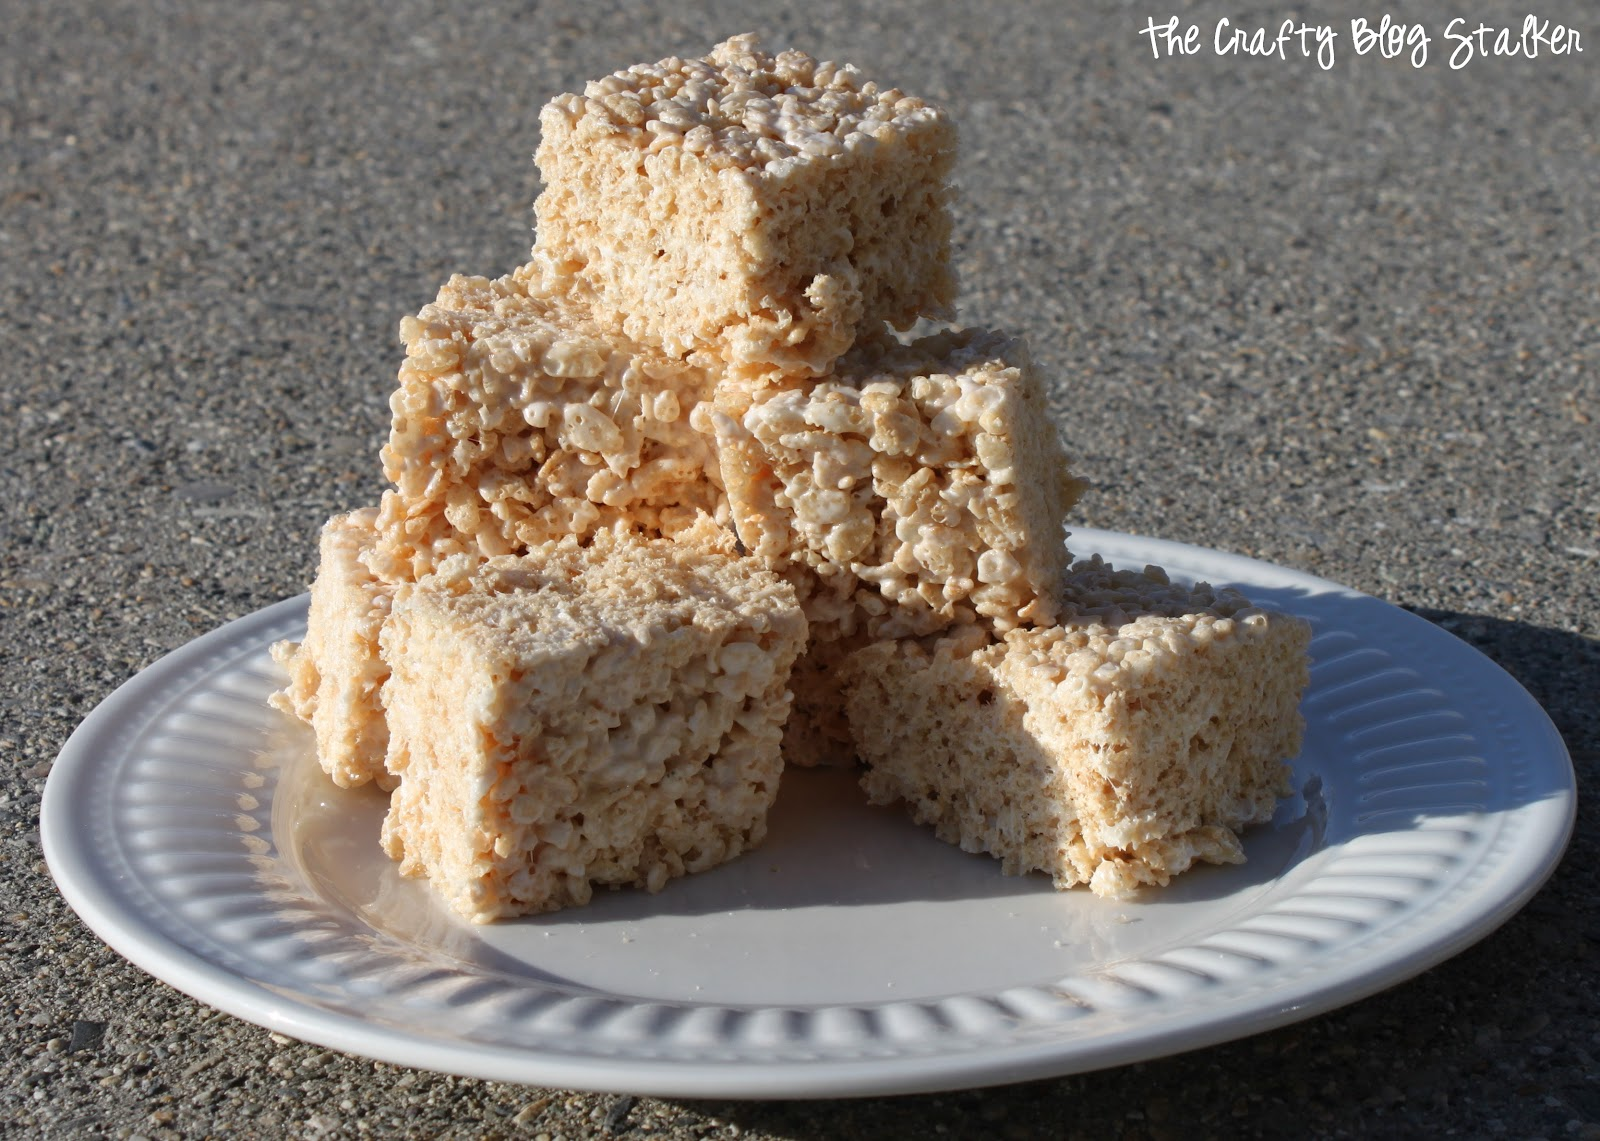 The Perfect Rice Crispy Treat The Crafty Blog Stalker